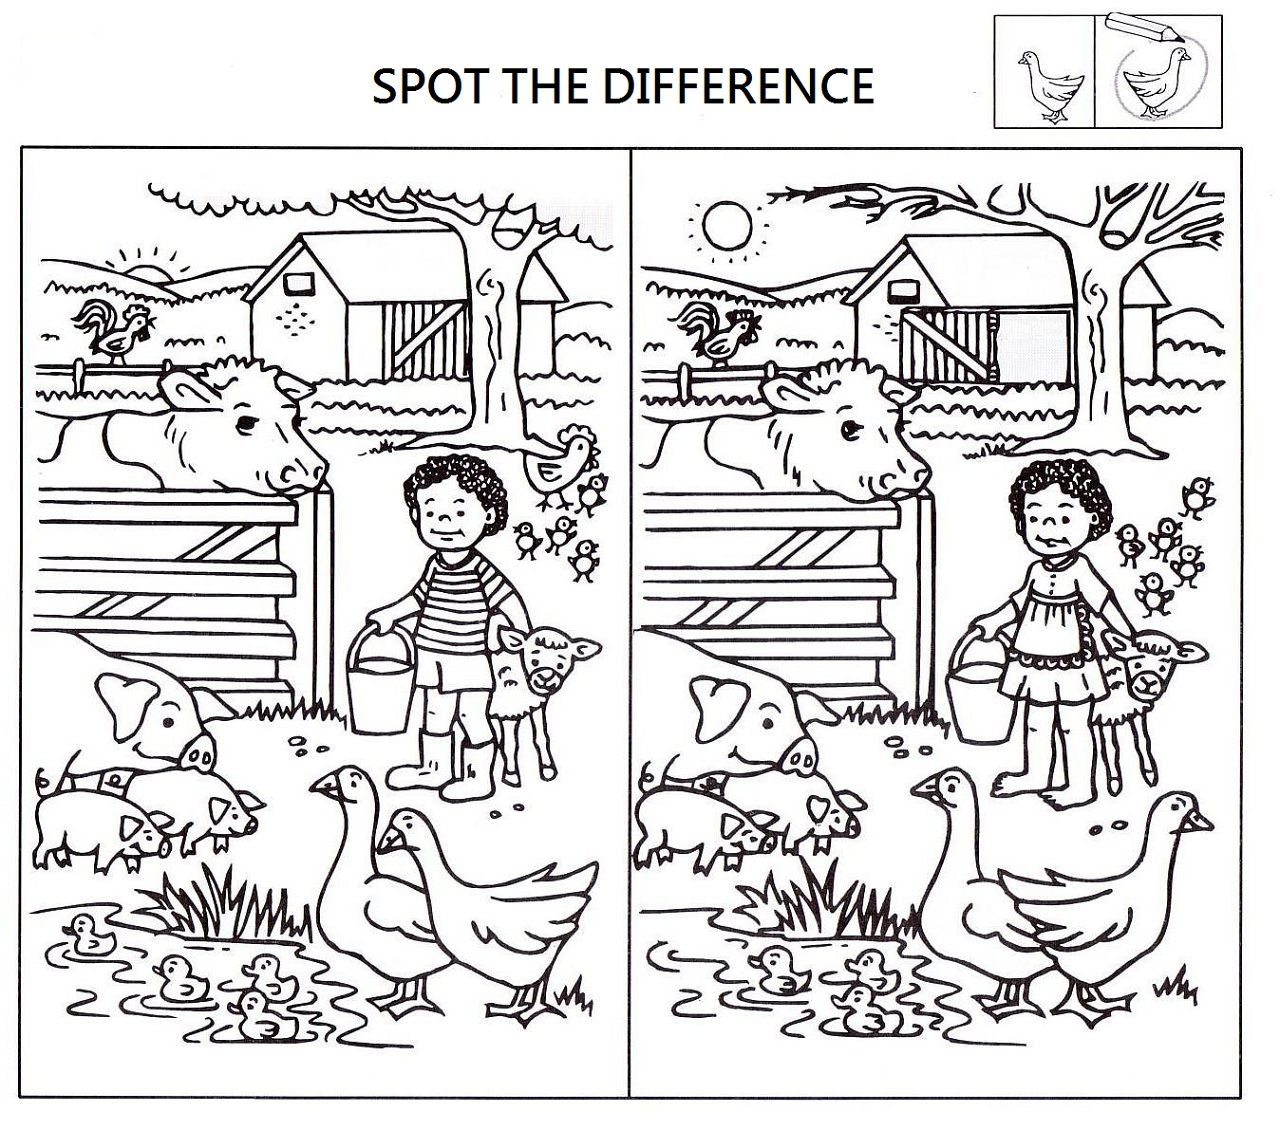 Spot The Difference Worksheets For Kids | Kids Worksheets Printable | Free Printable Spot The Difference Worksheets